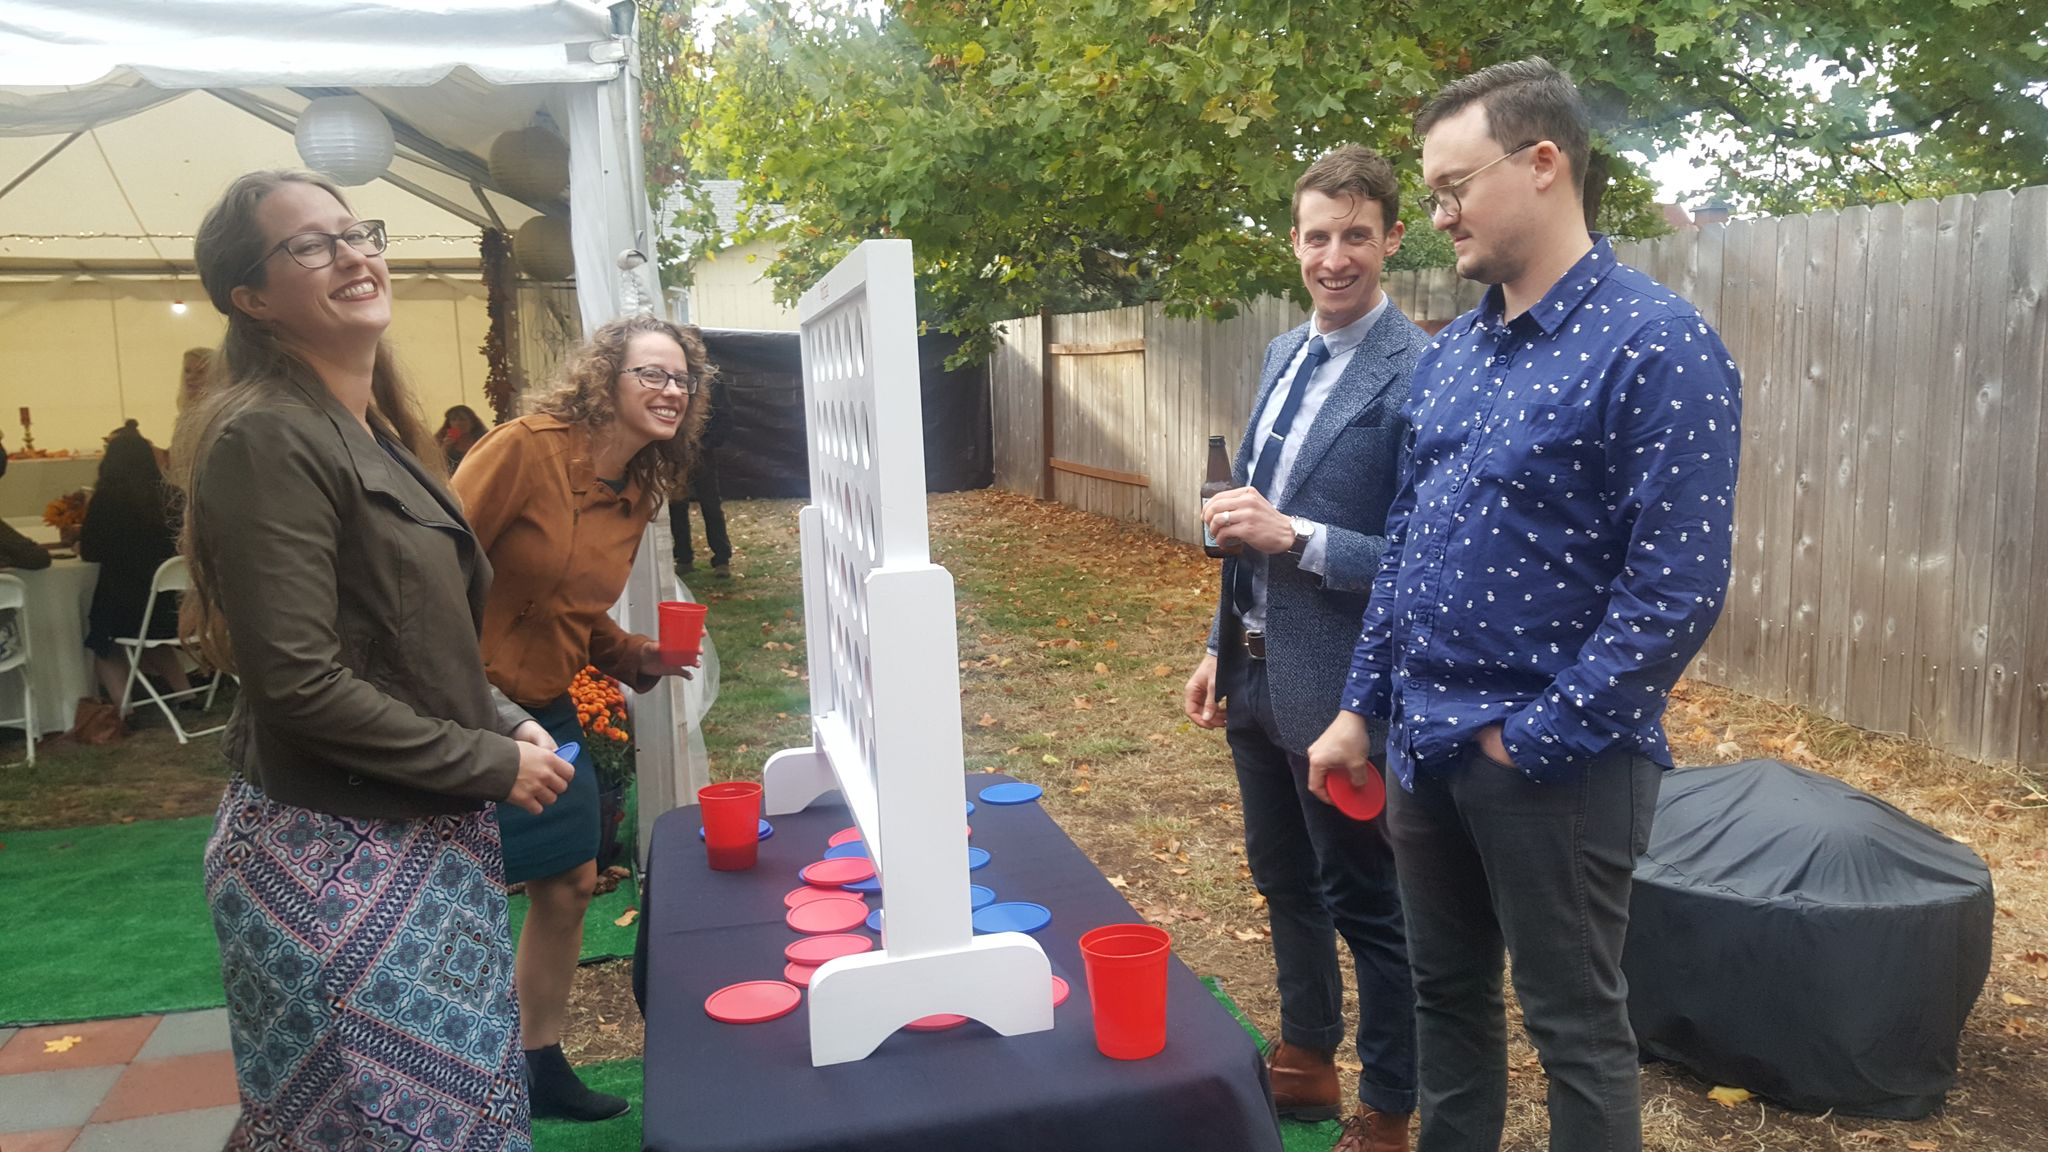 Group playing a Giant Connect Four Game